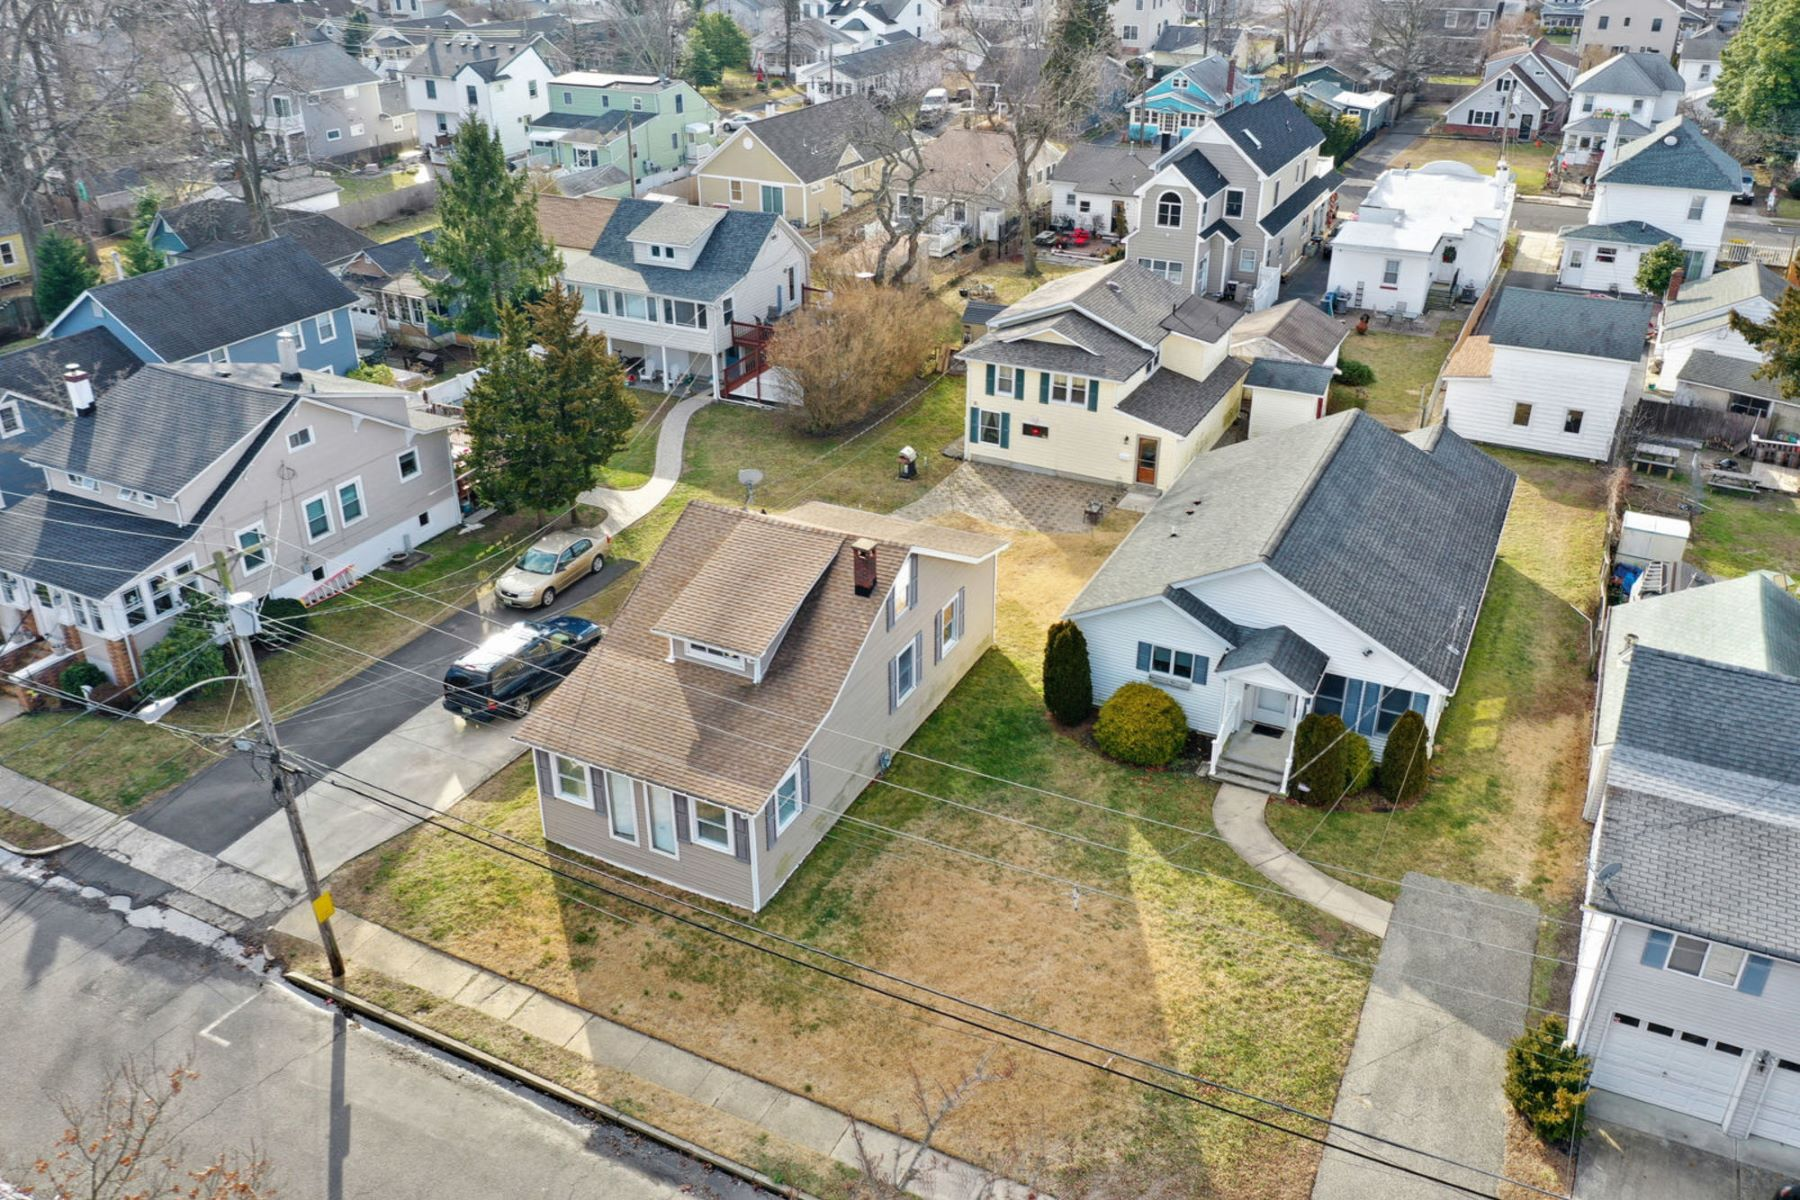 Single Family Home for Sale at Two Houses on One Lot- Investment! 1208 Pine Tree Way, Belmar, New Jersey 07719 United States